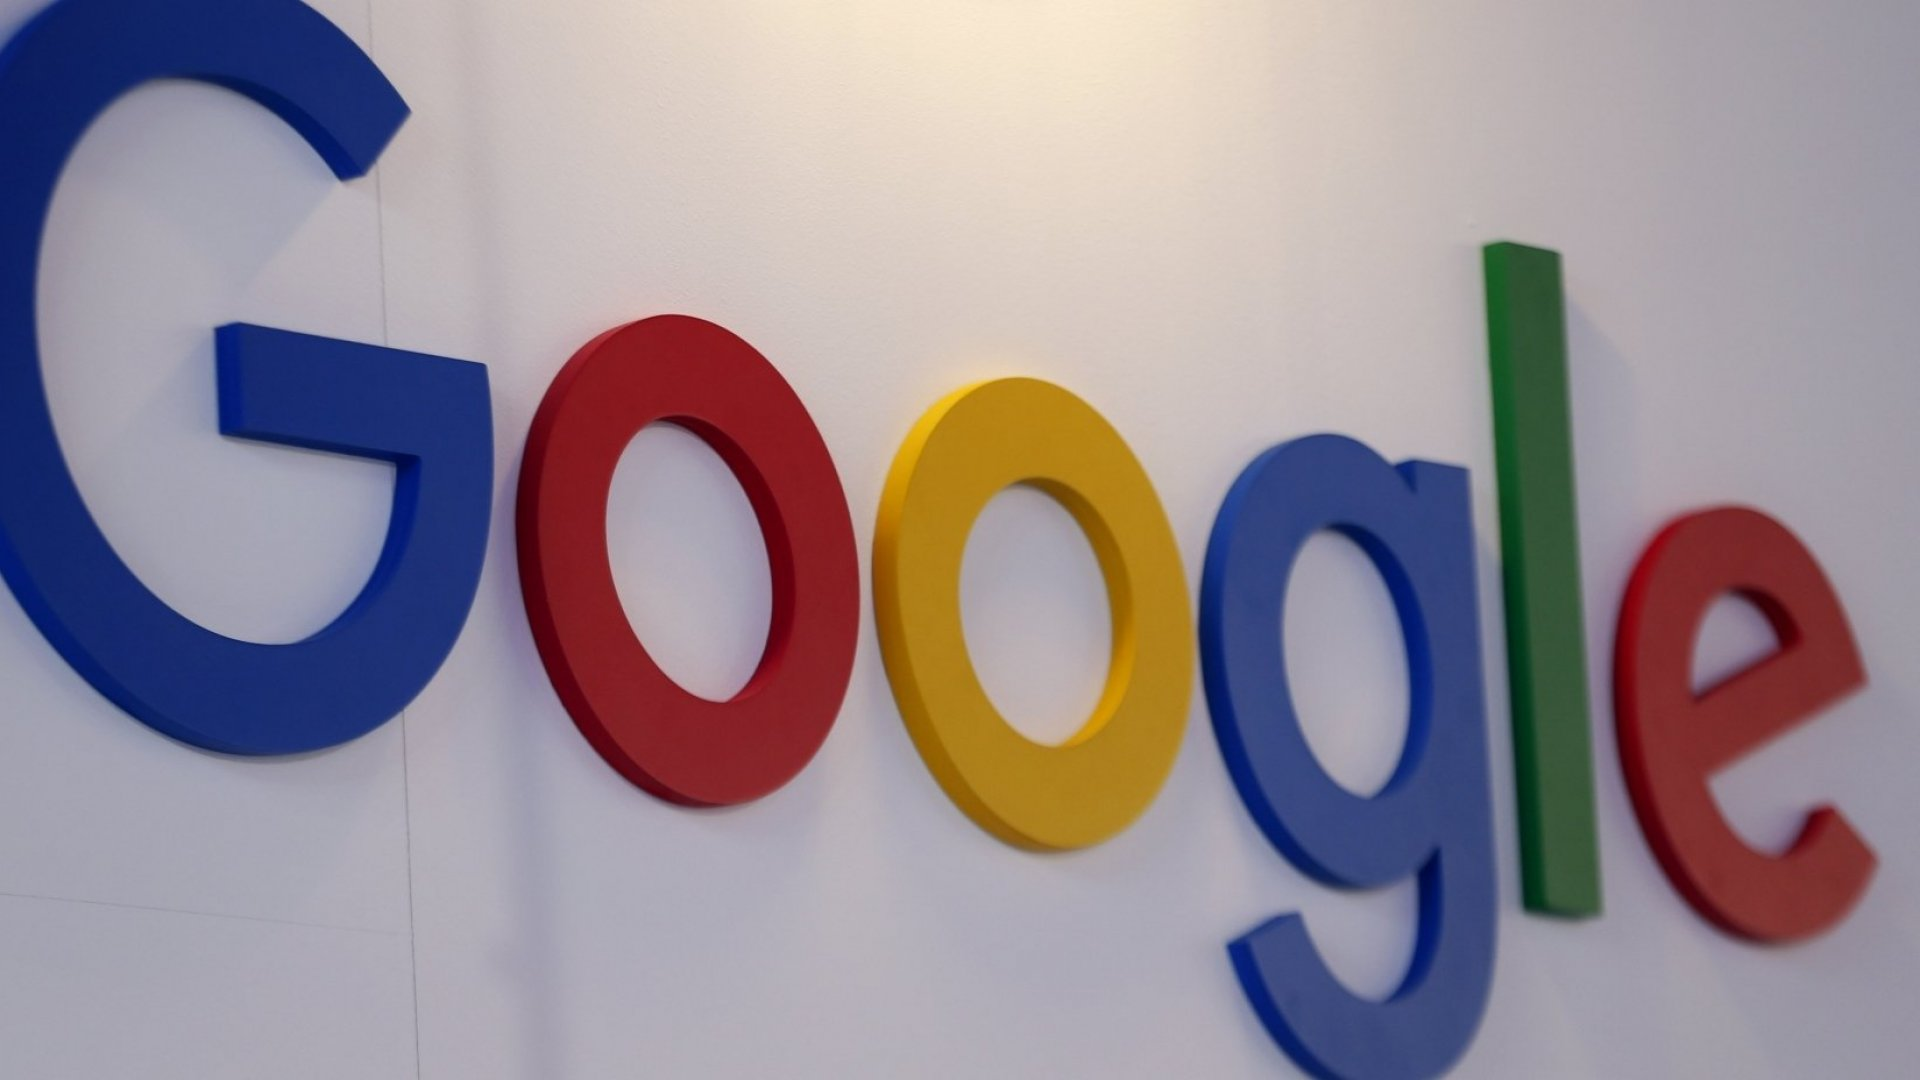 This Guy Interviewed at Google for a Dream Job. He Walked Away With the Best Story Ever